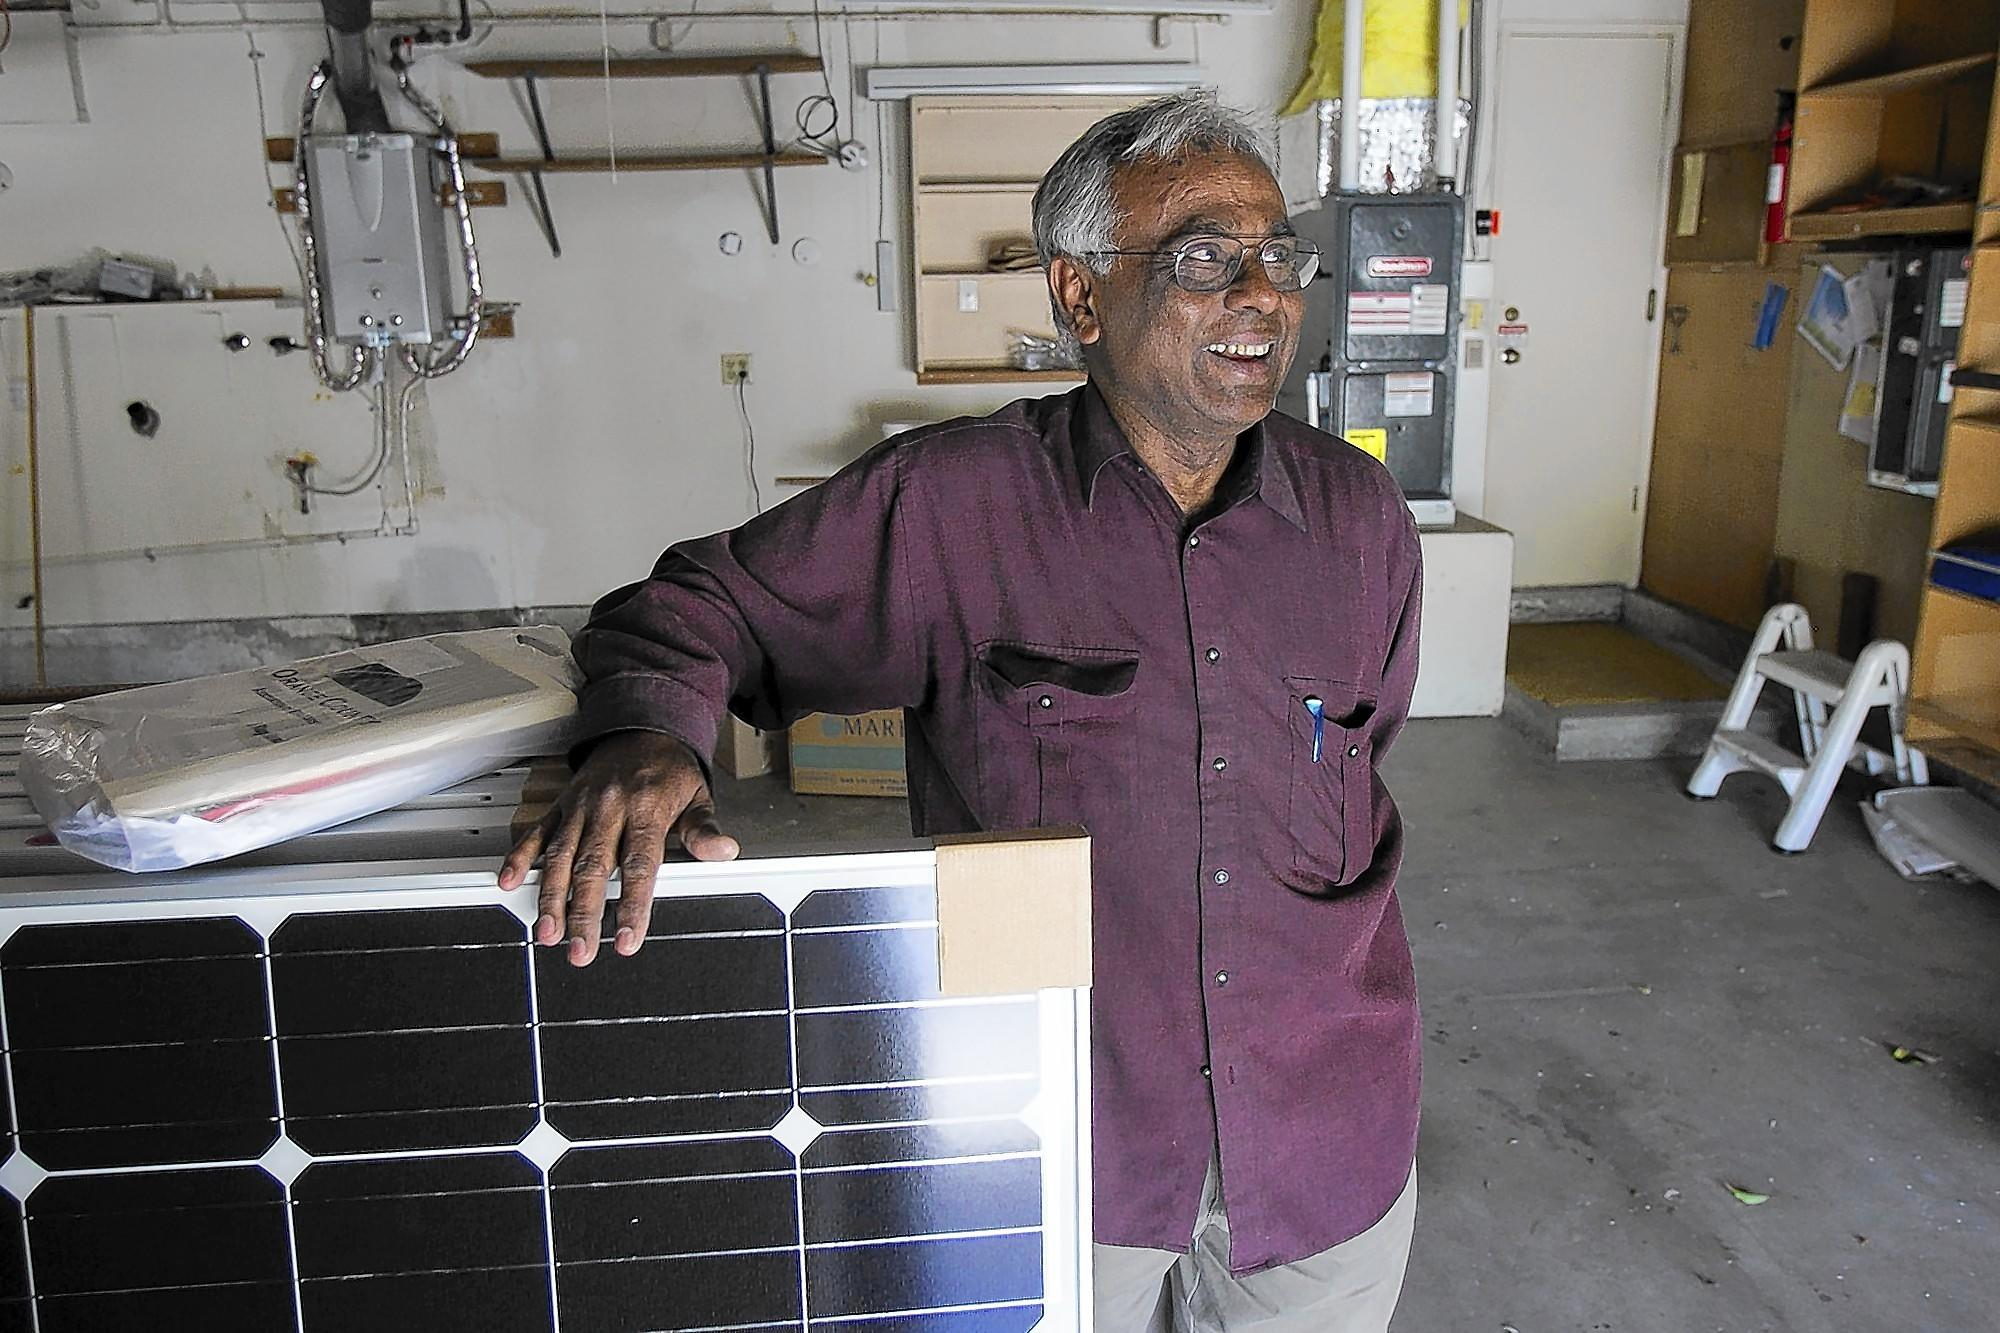 Durai Swamy, a homeowner in Huntington Beach, is upgrading his home to be as energy efficient as possible. An energy efficient furnace and tankless hot water heater have been installed and he is waiting to install solar panels on the roof.